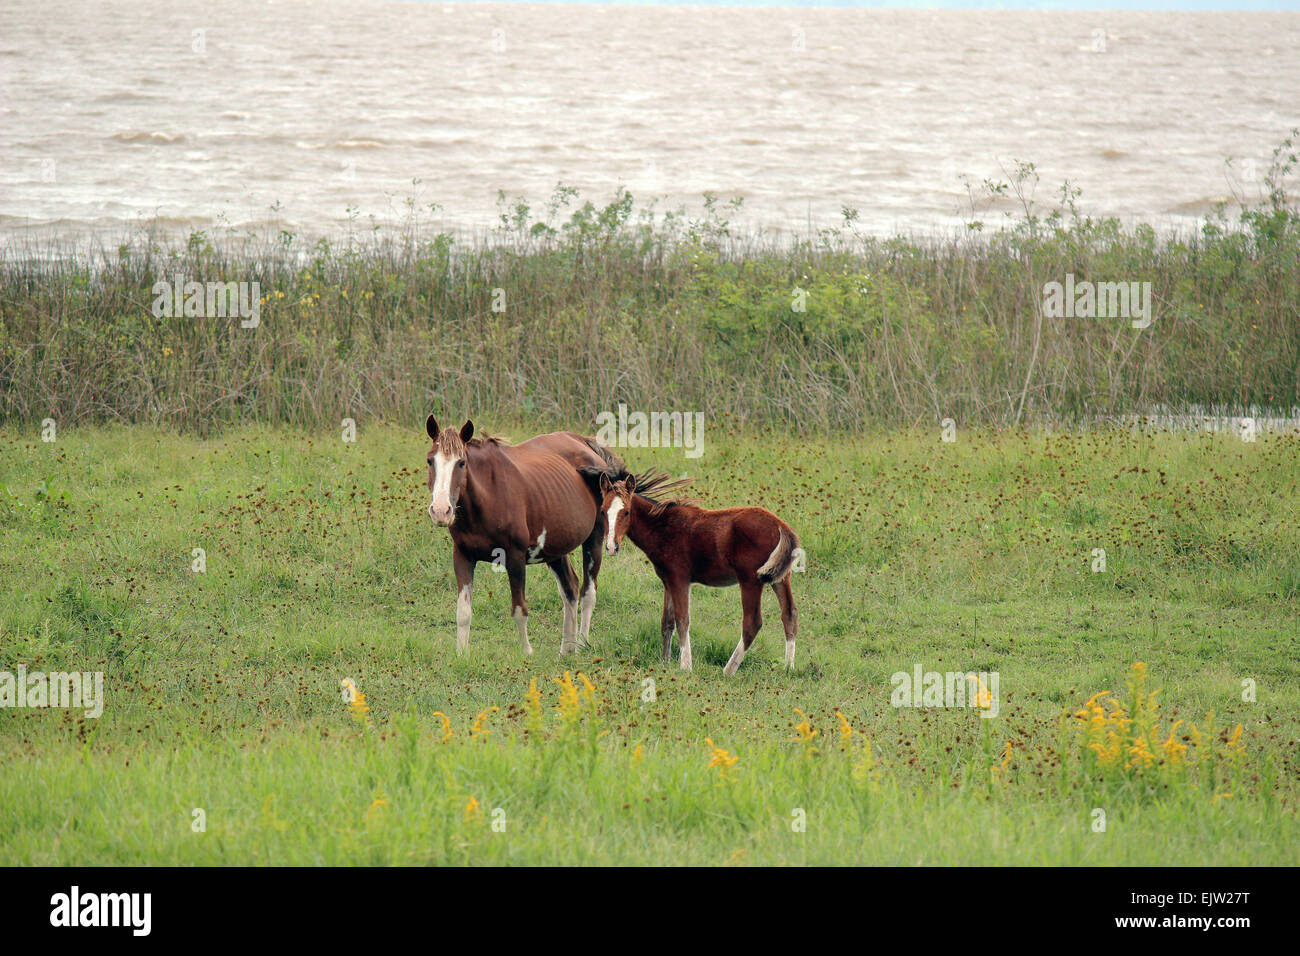 The mare and her little cub in the field. - Stock Image